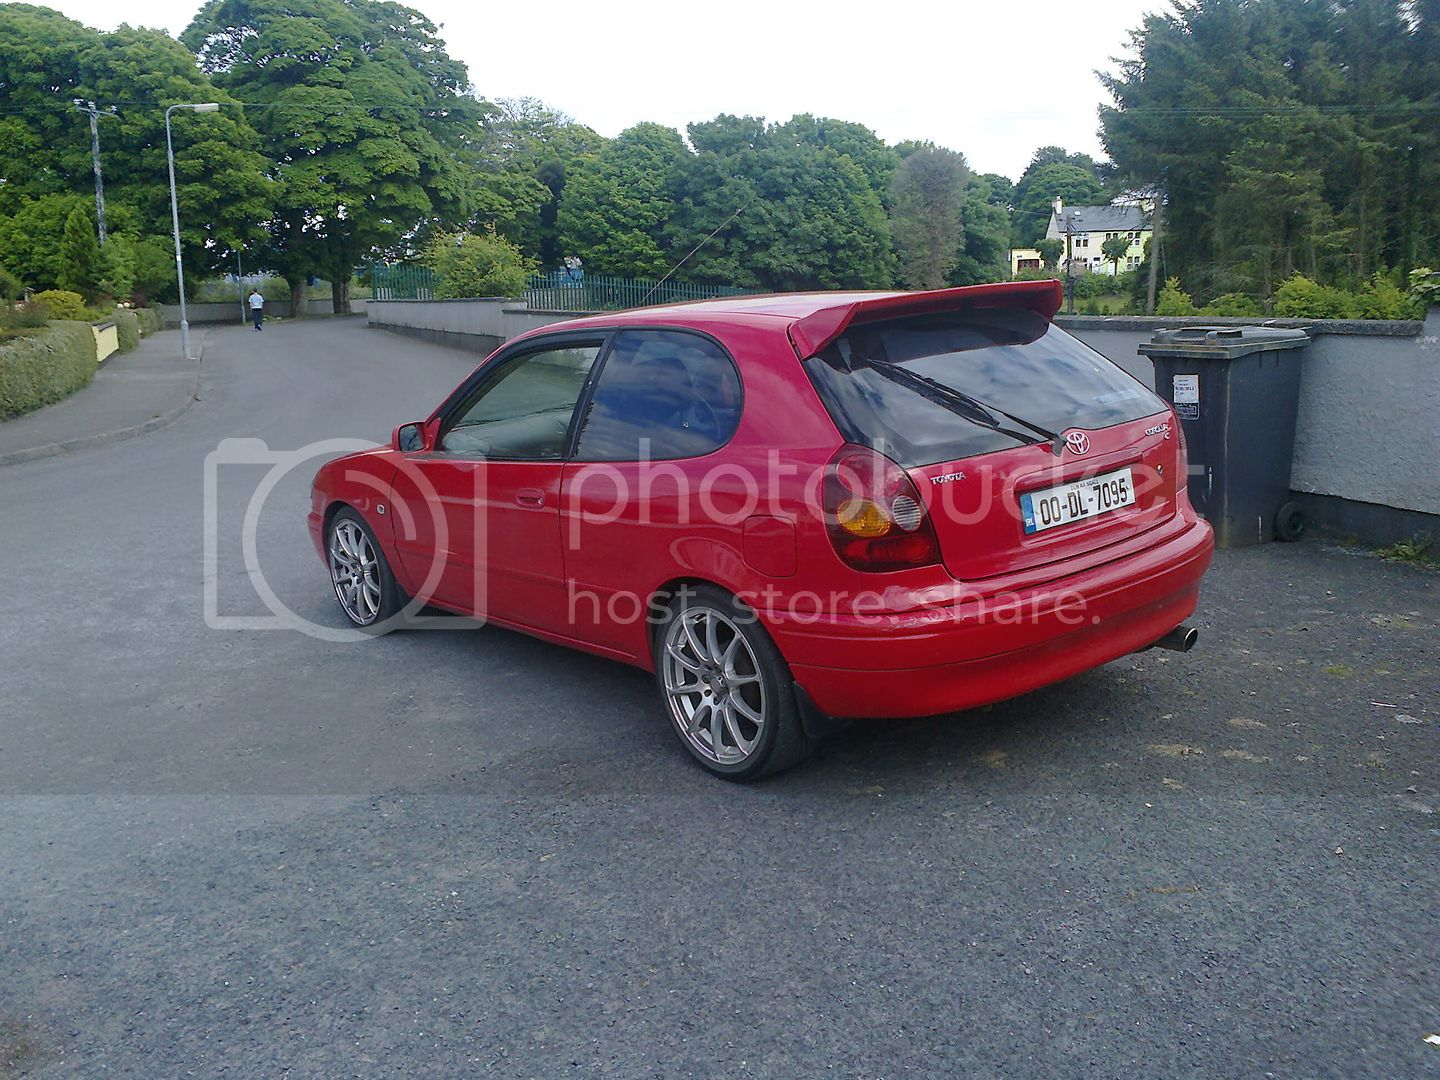 My new facelift e11 corolla hatch Photo0567